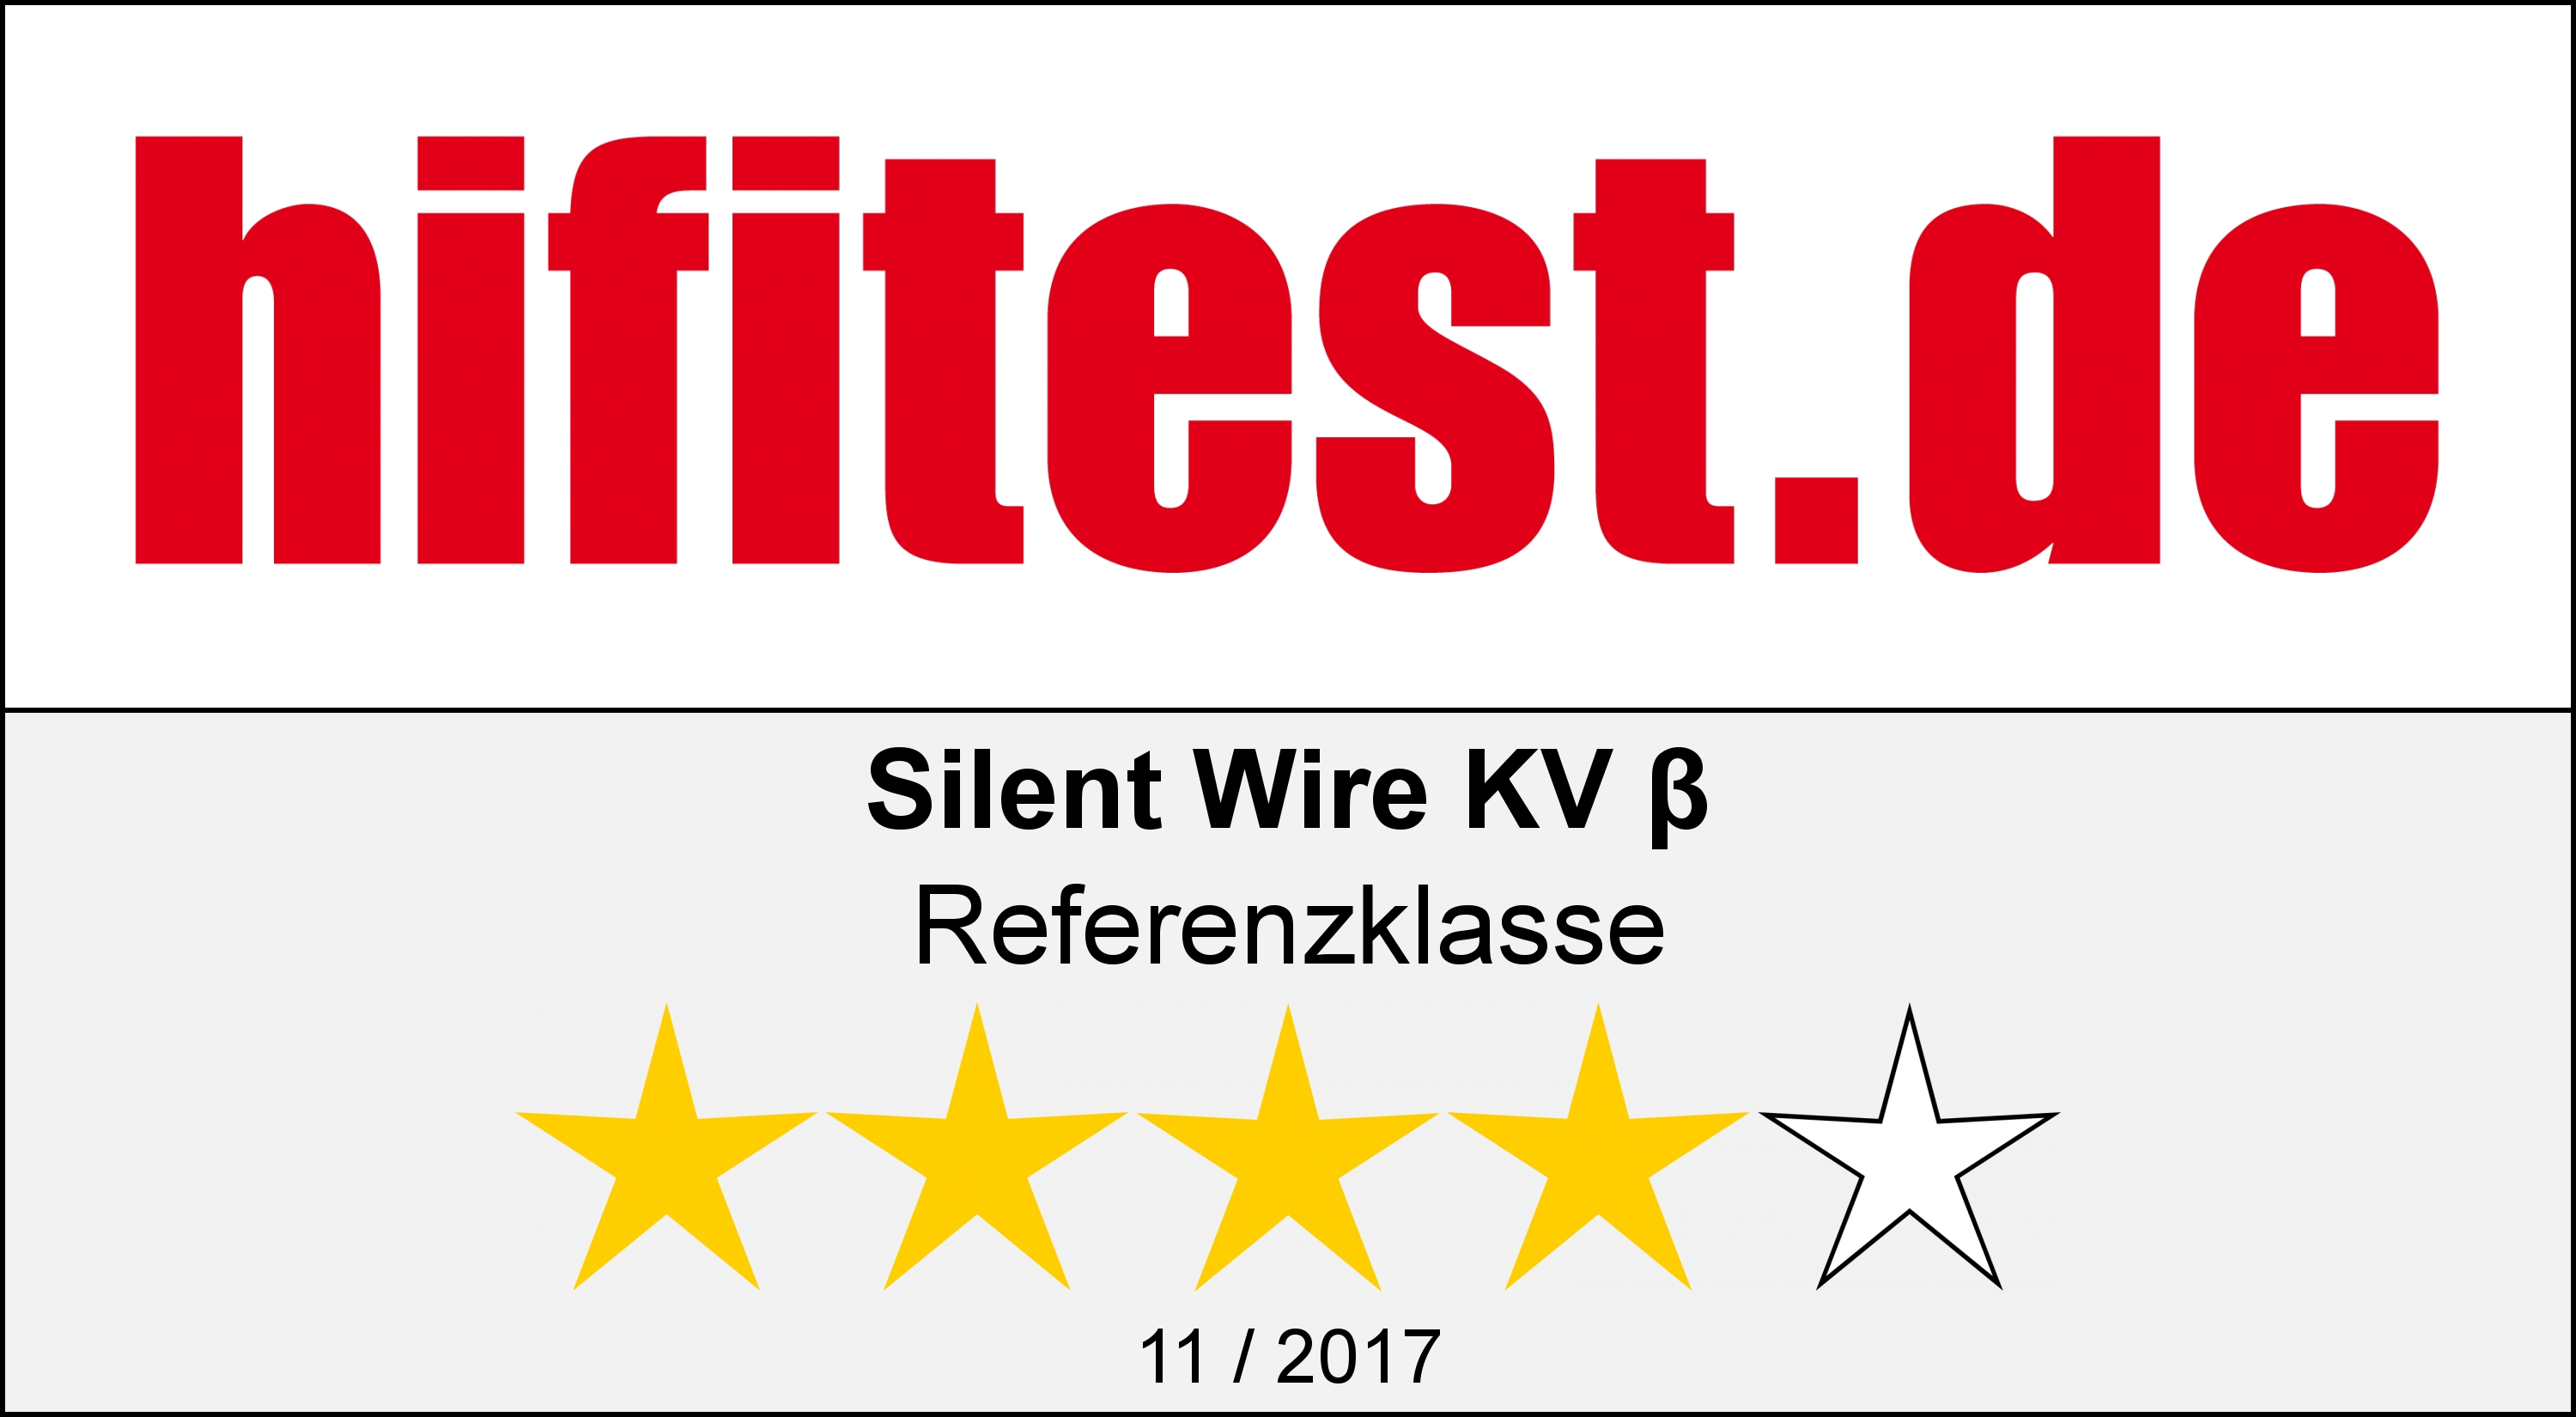 Silent WIRE KV Beta auf hifitest.de